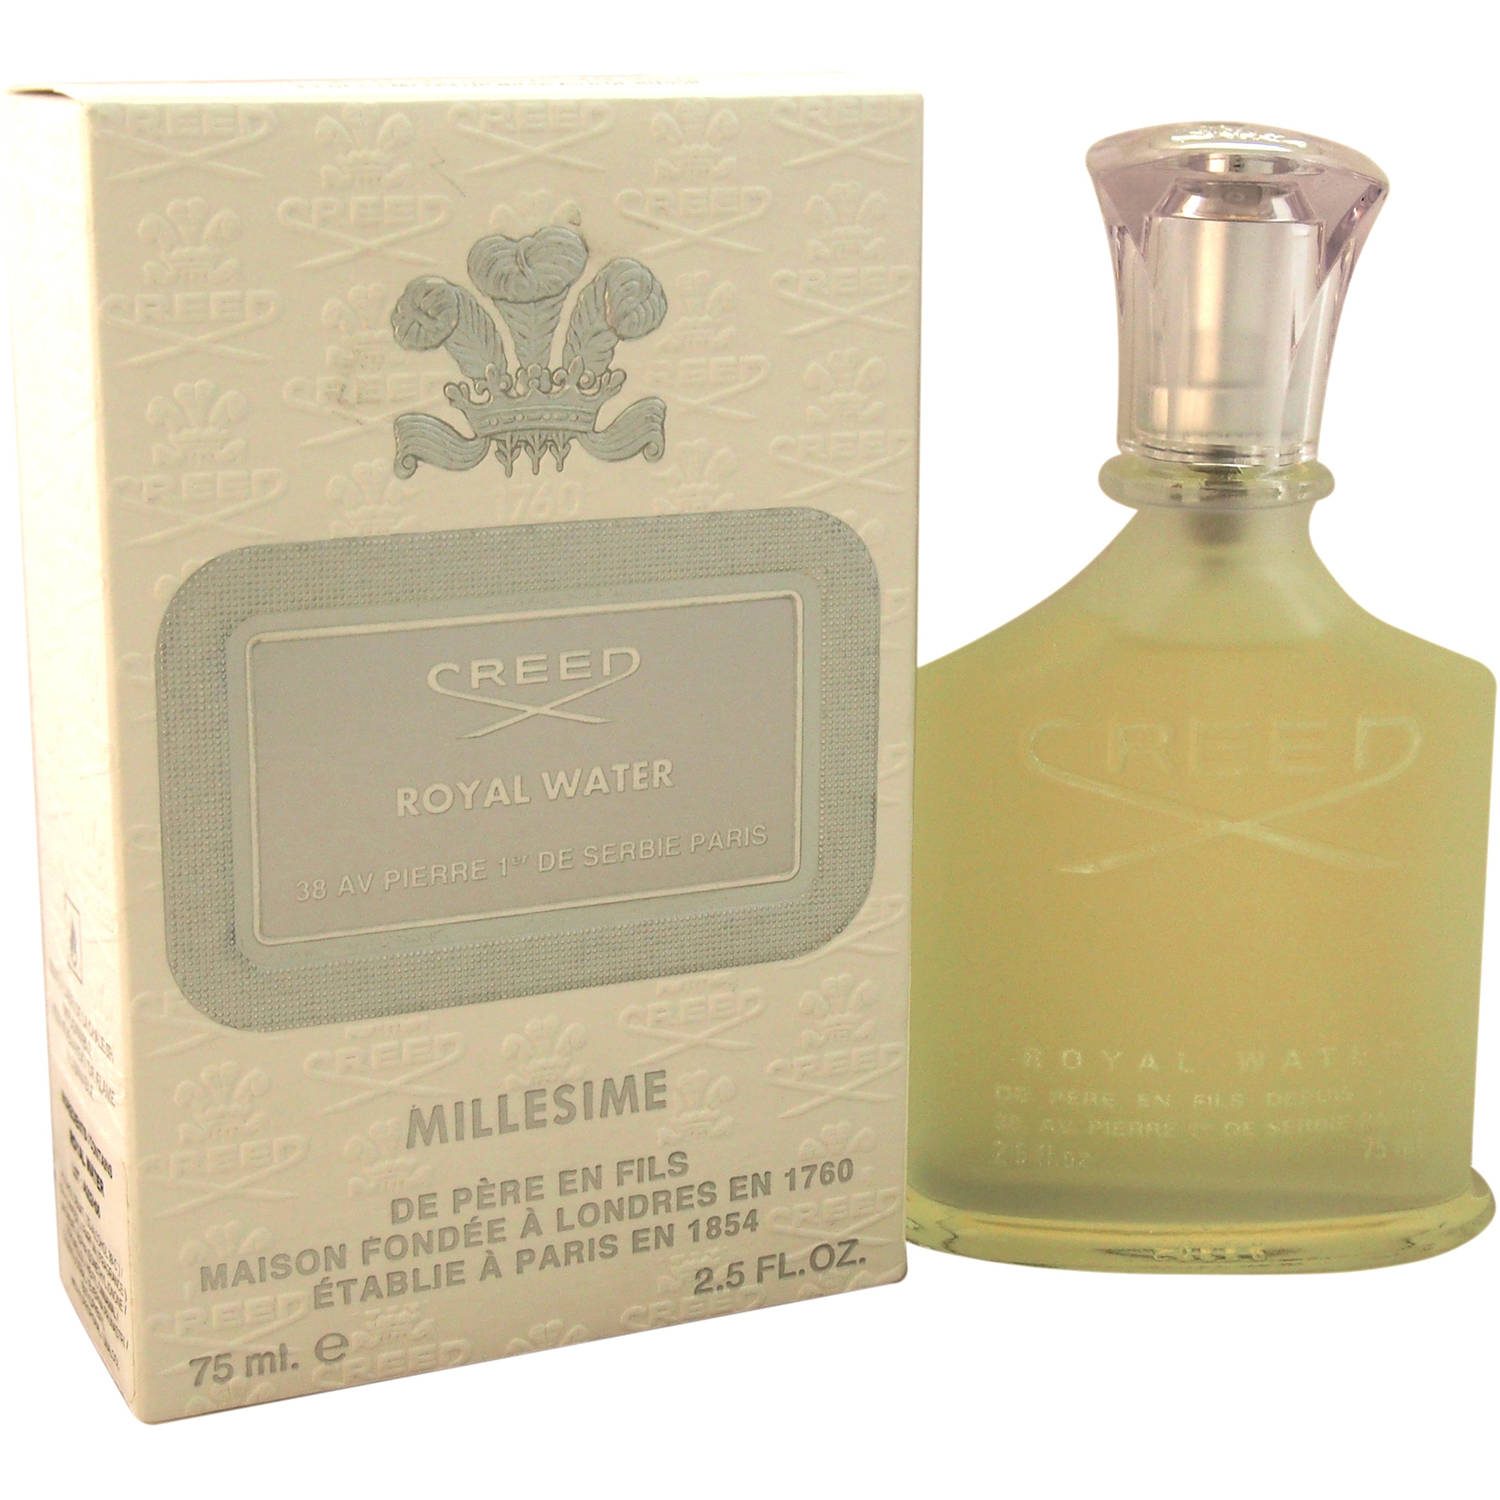 Creed Royal Water Unisex EDT Spray, 2.5 fl oz